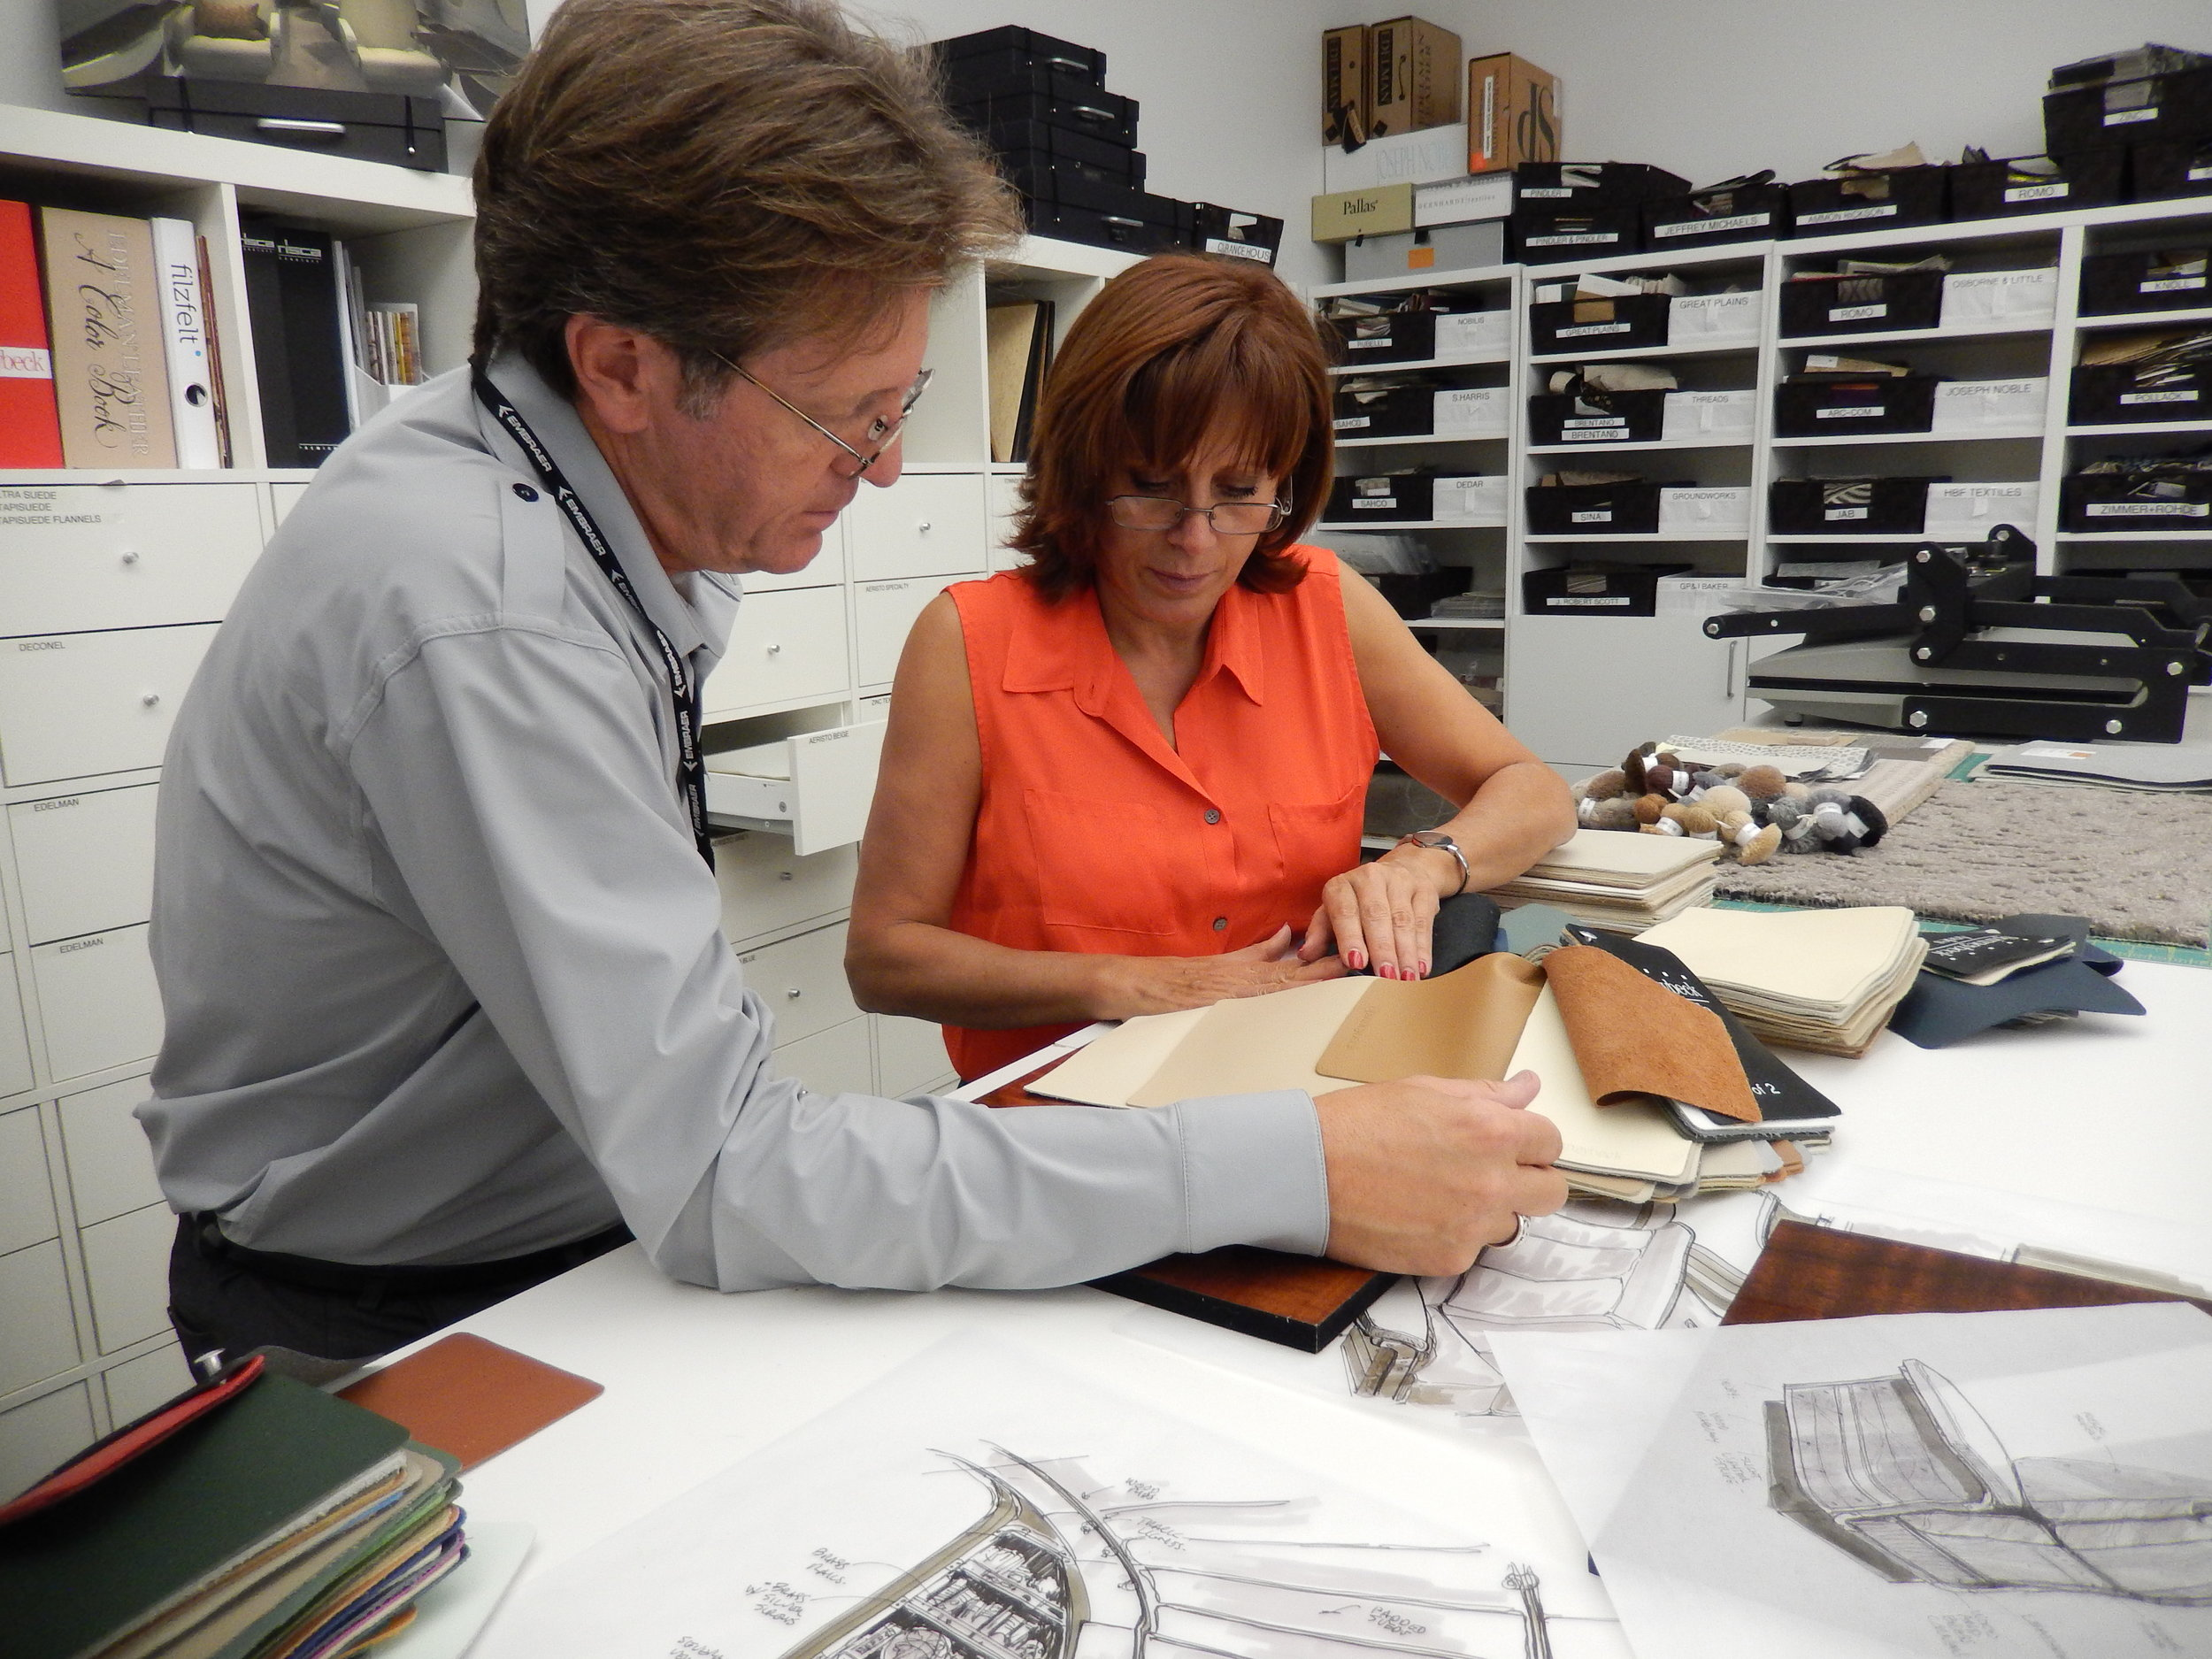 It's all in the details. - Master designer Edward Sotto reviews his design sketches directly with manufacturers (seen here at Embraer Design Studio) and aviation contractors to ensure that in the end, everything